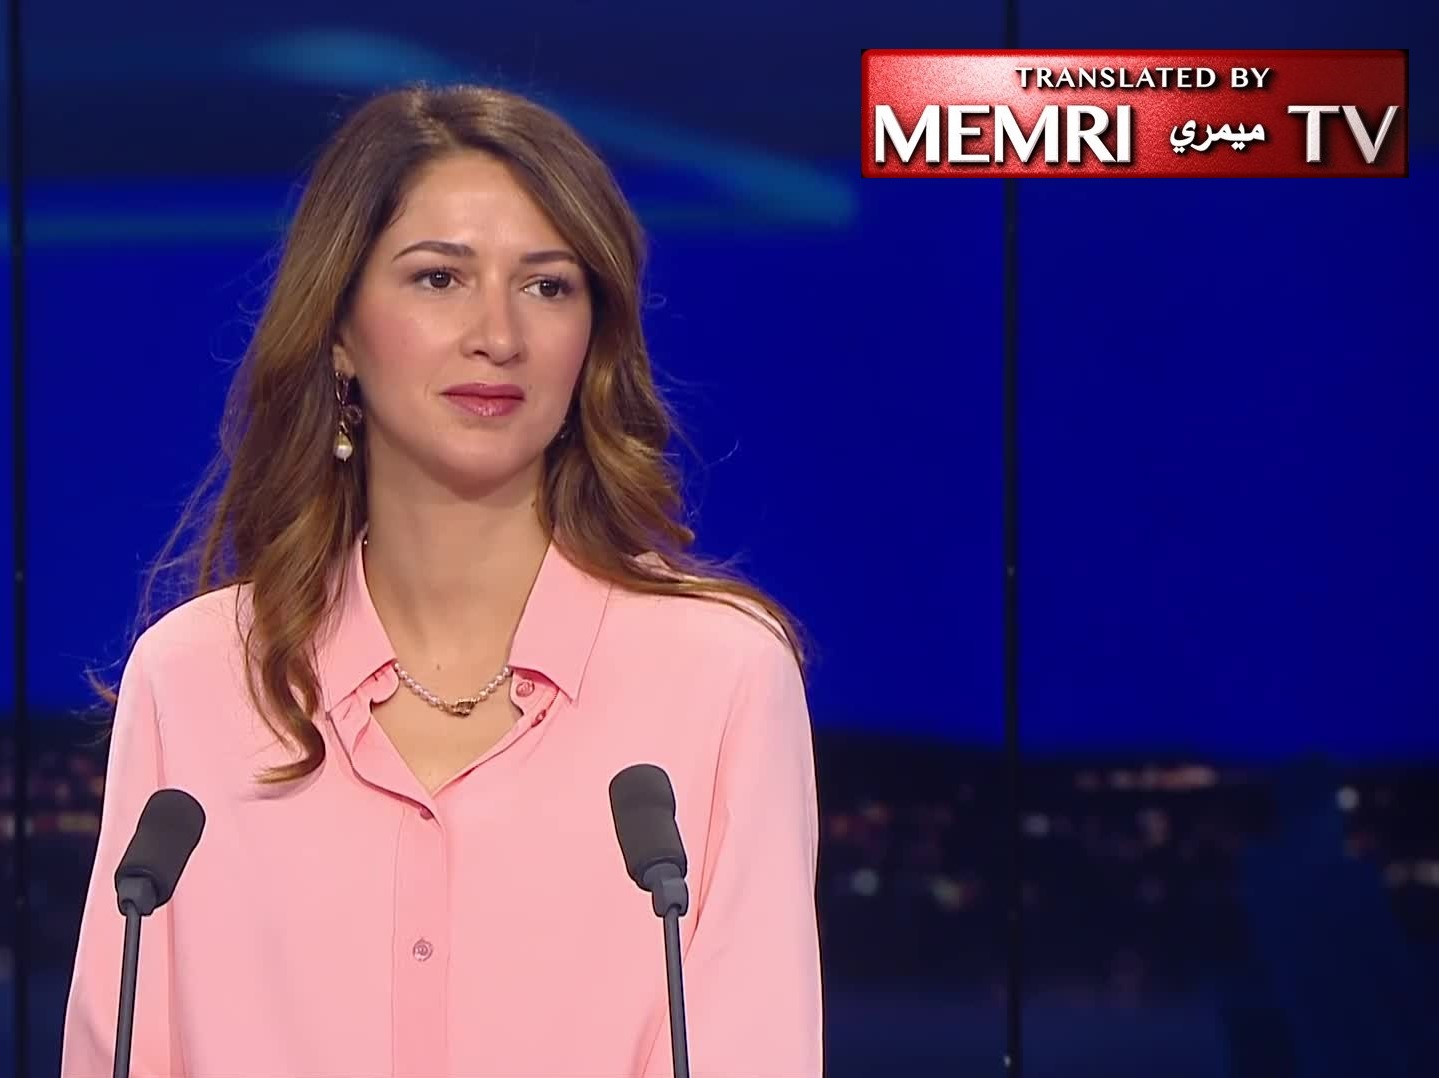 French-Moroccan Journalist Zineb El Rhazoui, Formerly Of 'Charlie Hebdo': Islam Must Accept Criticism, Abide by Law; I Hope Extremists Are Liberated from Their Dark Ideology